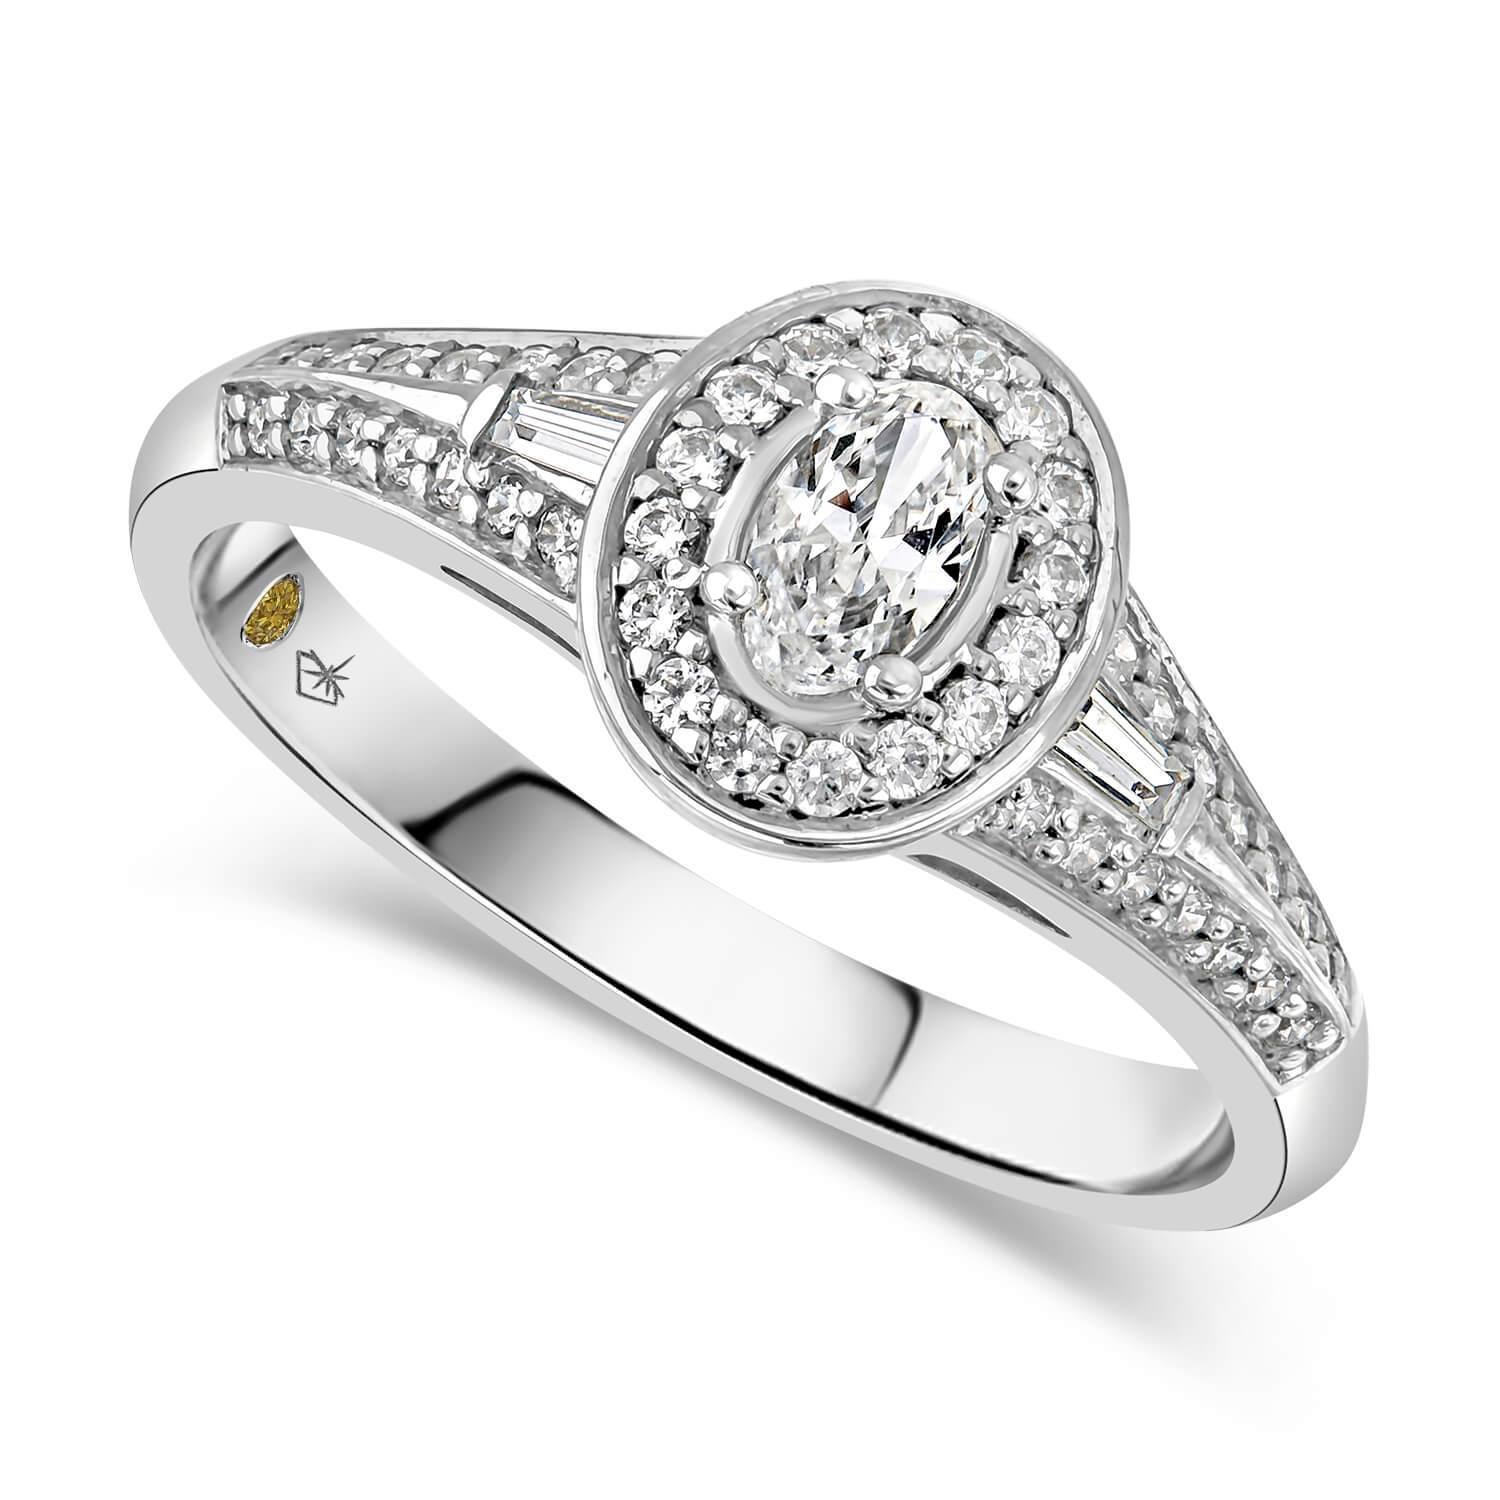 Northern Star 0.50ct Oval Diamond 18ct White Gold Ring